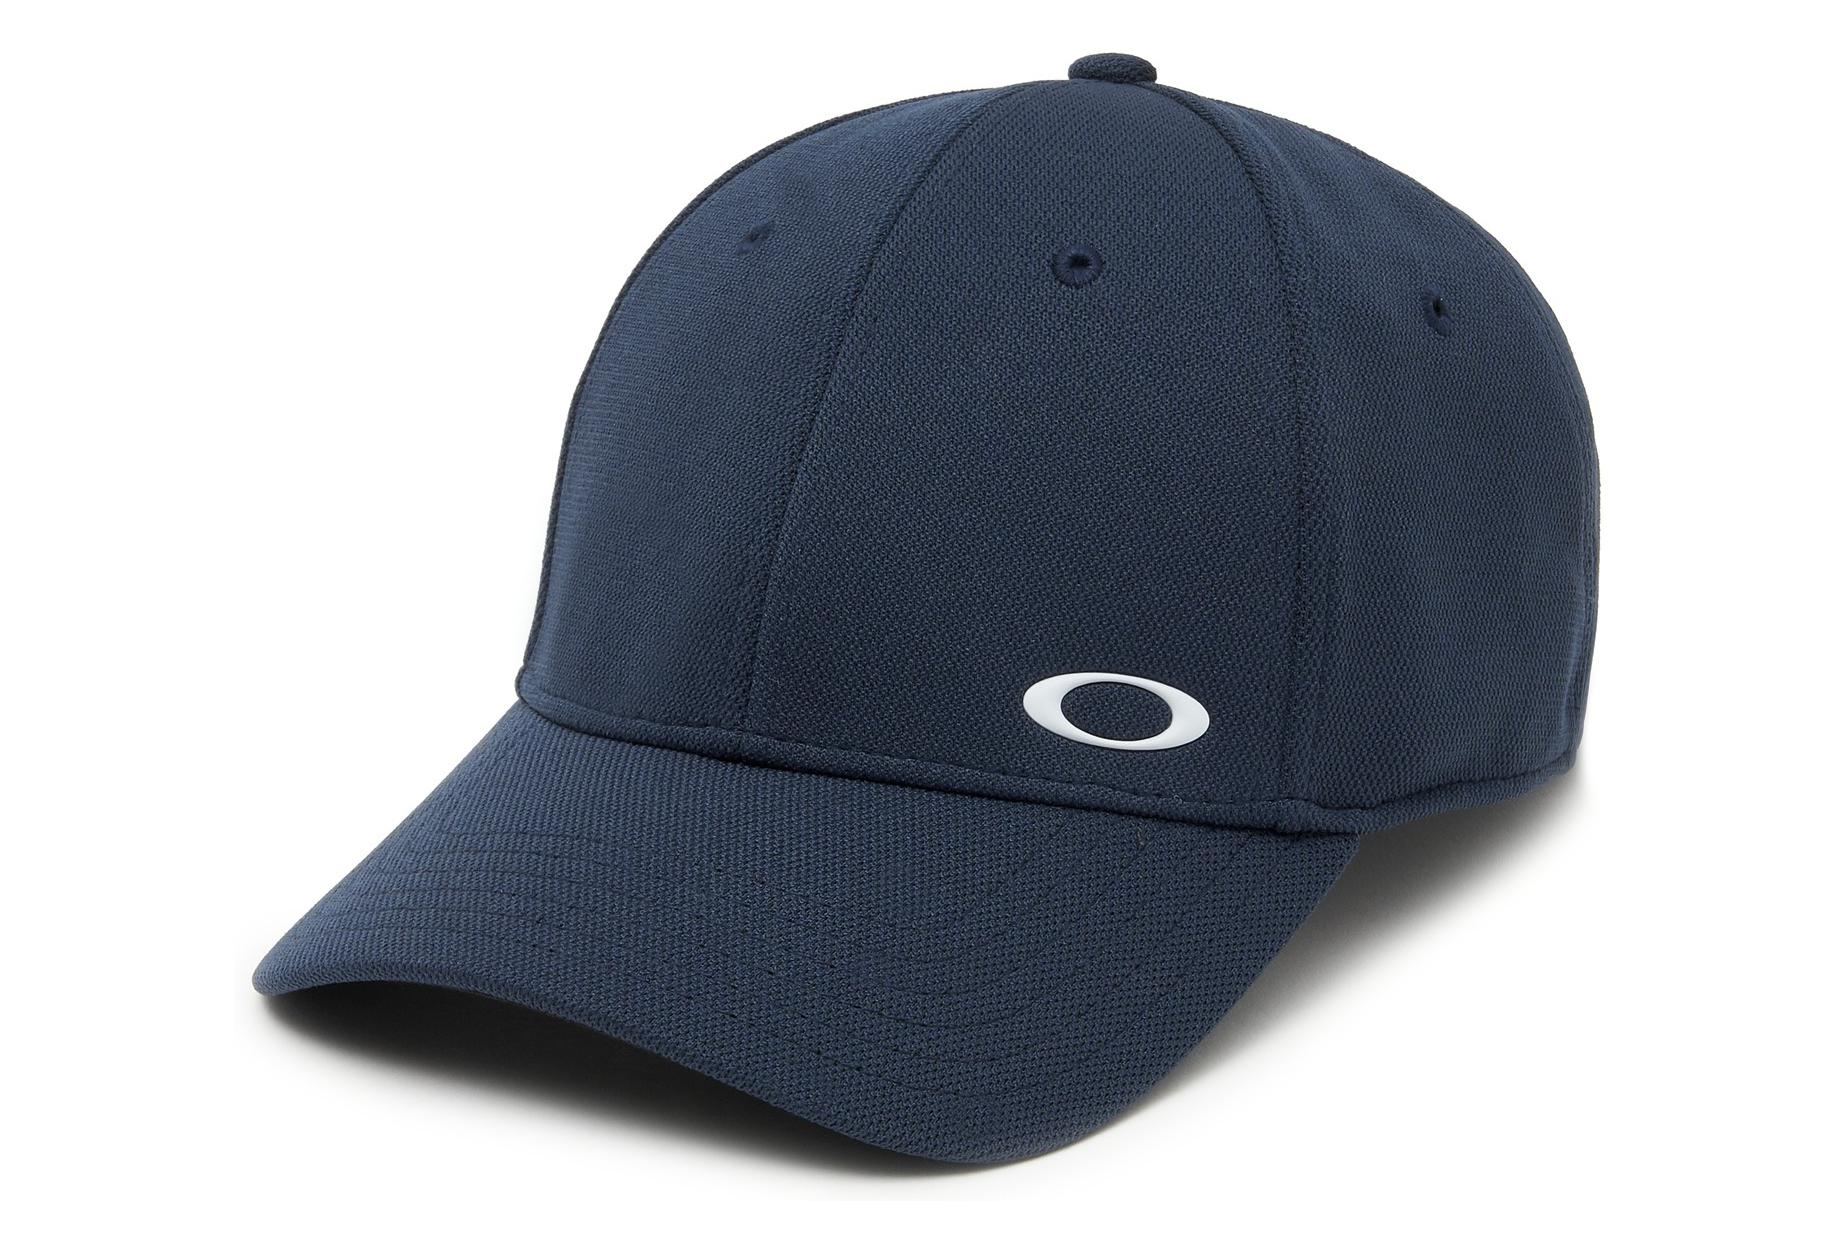 199c3244bb642 Oakley Stretch Fit Hats Silicon Ellipse Navy Blue